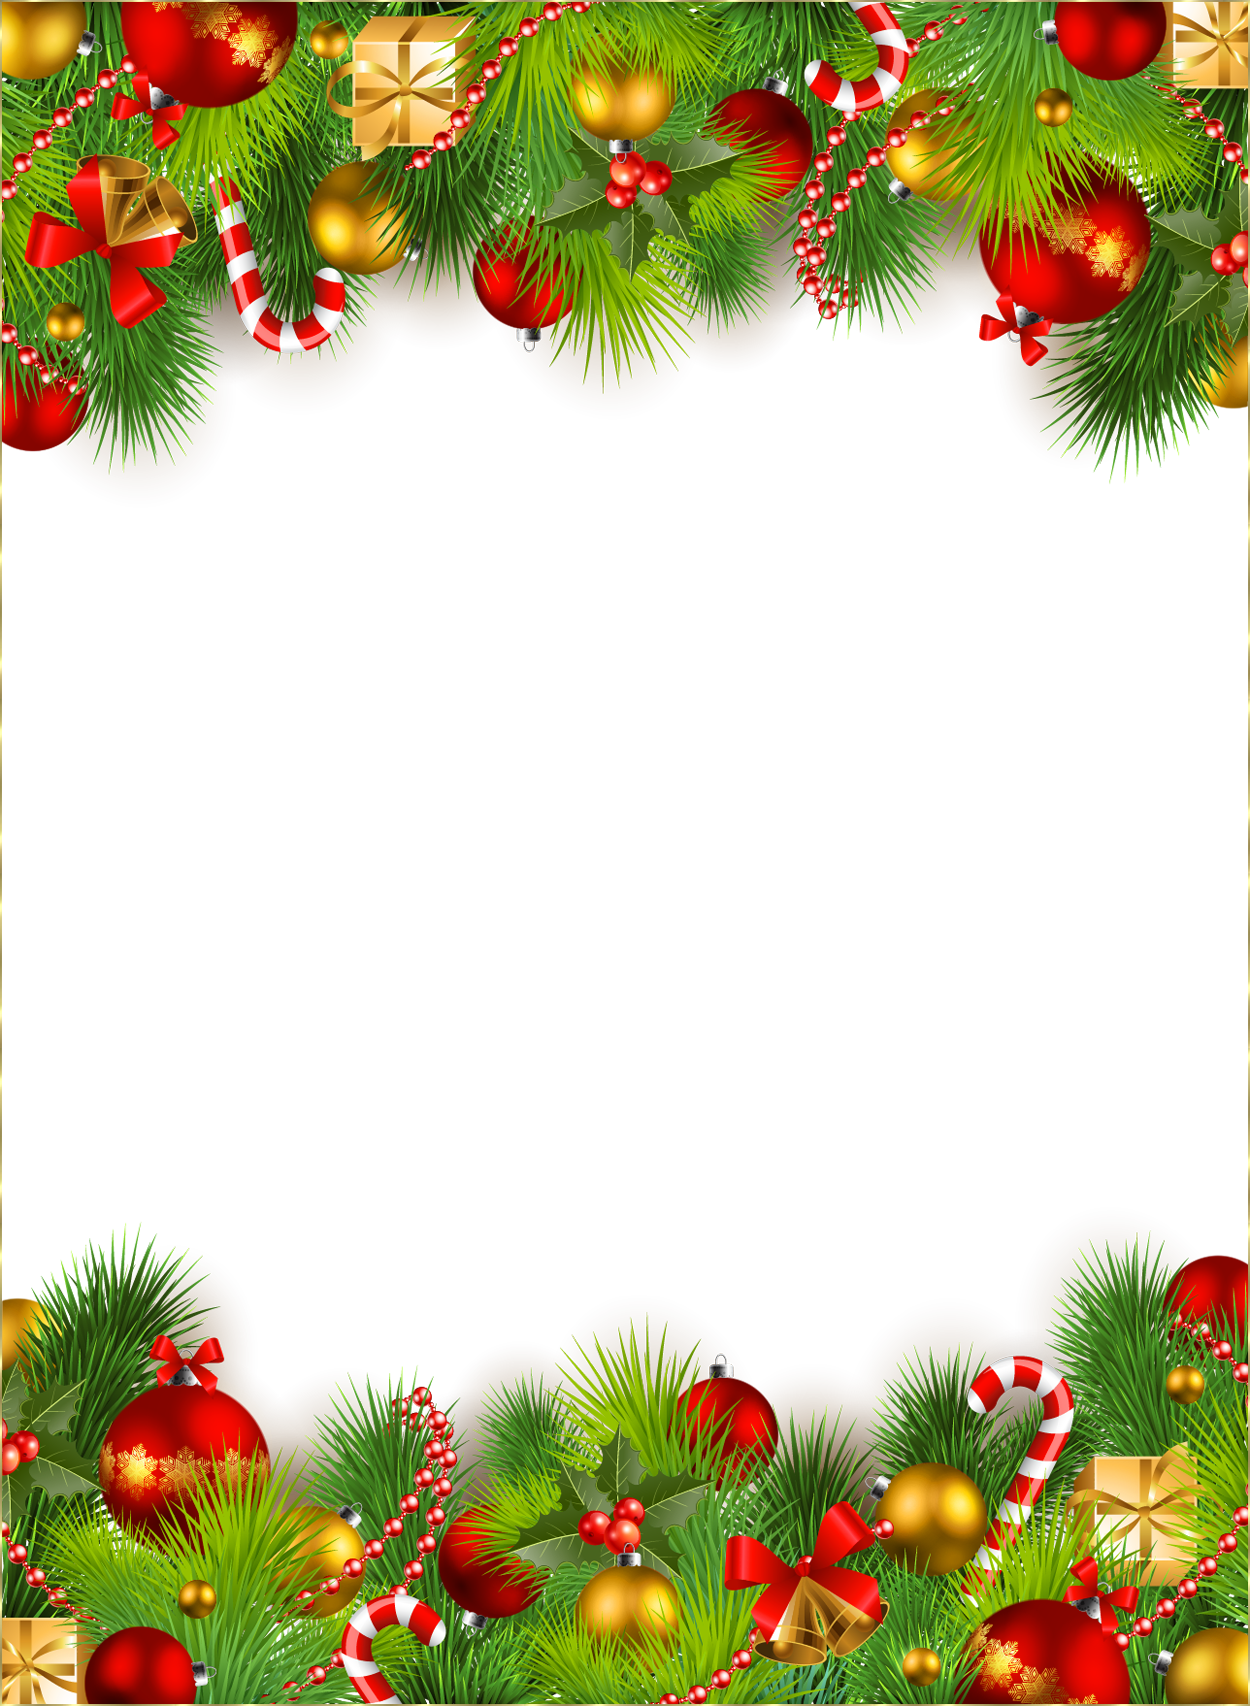 Christmas frame png #35327 - Free Icons and PNG Backgrounds